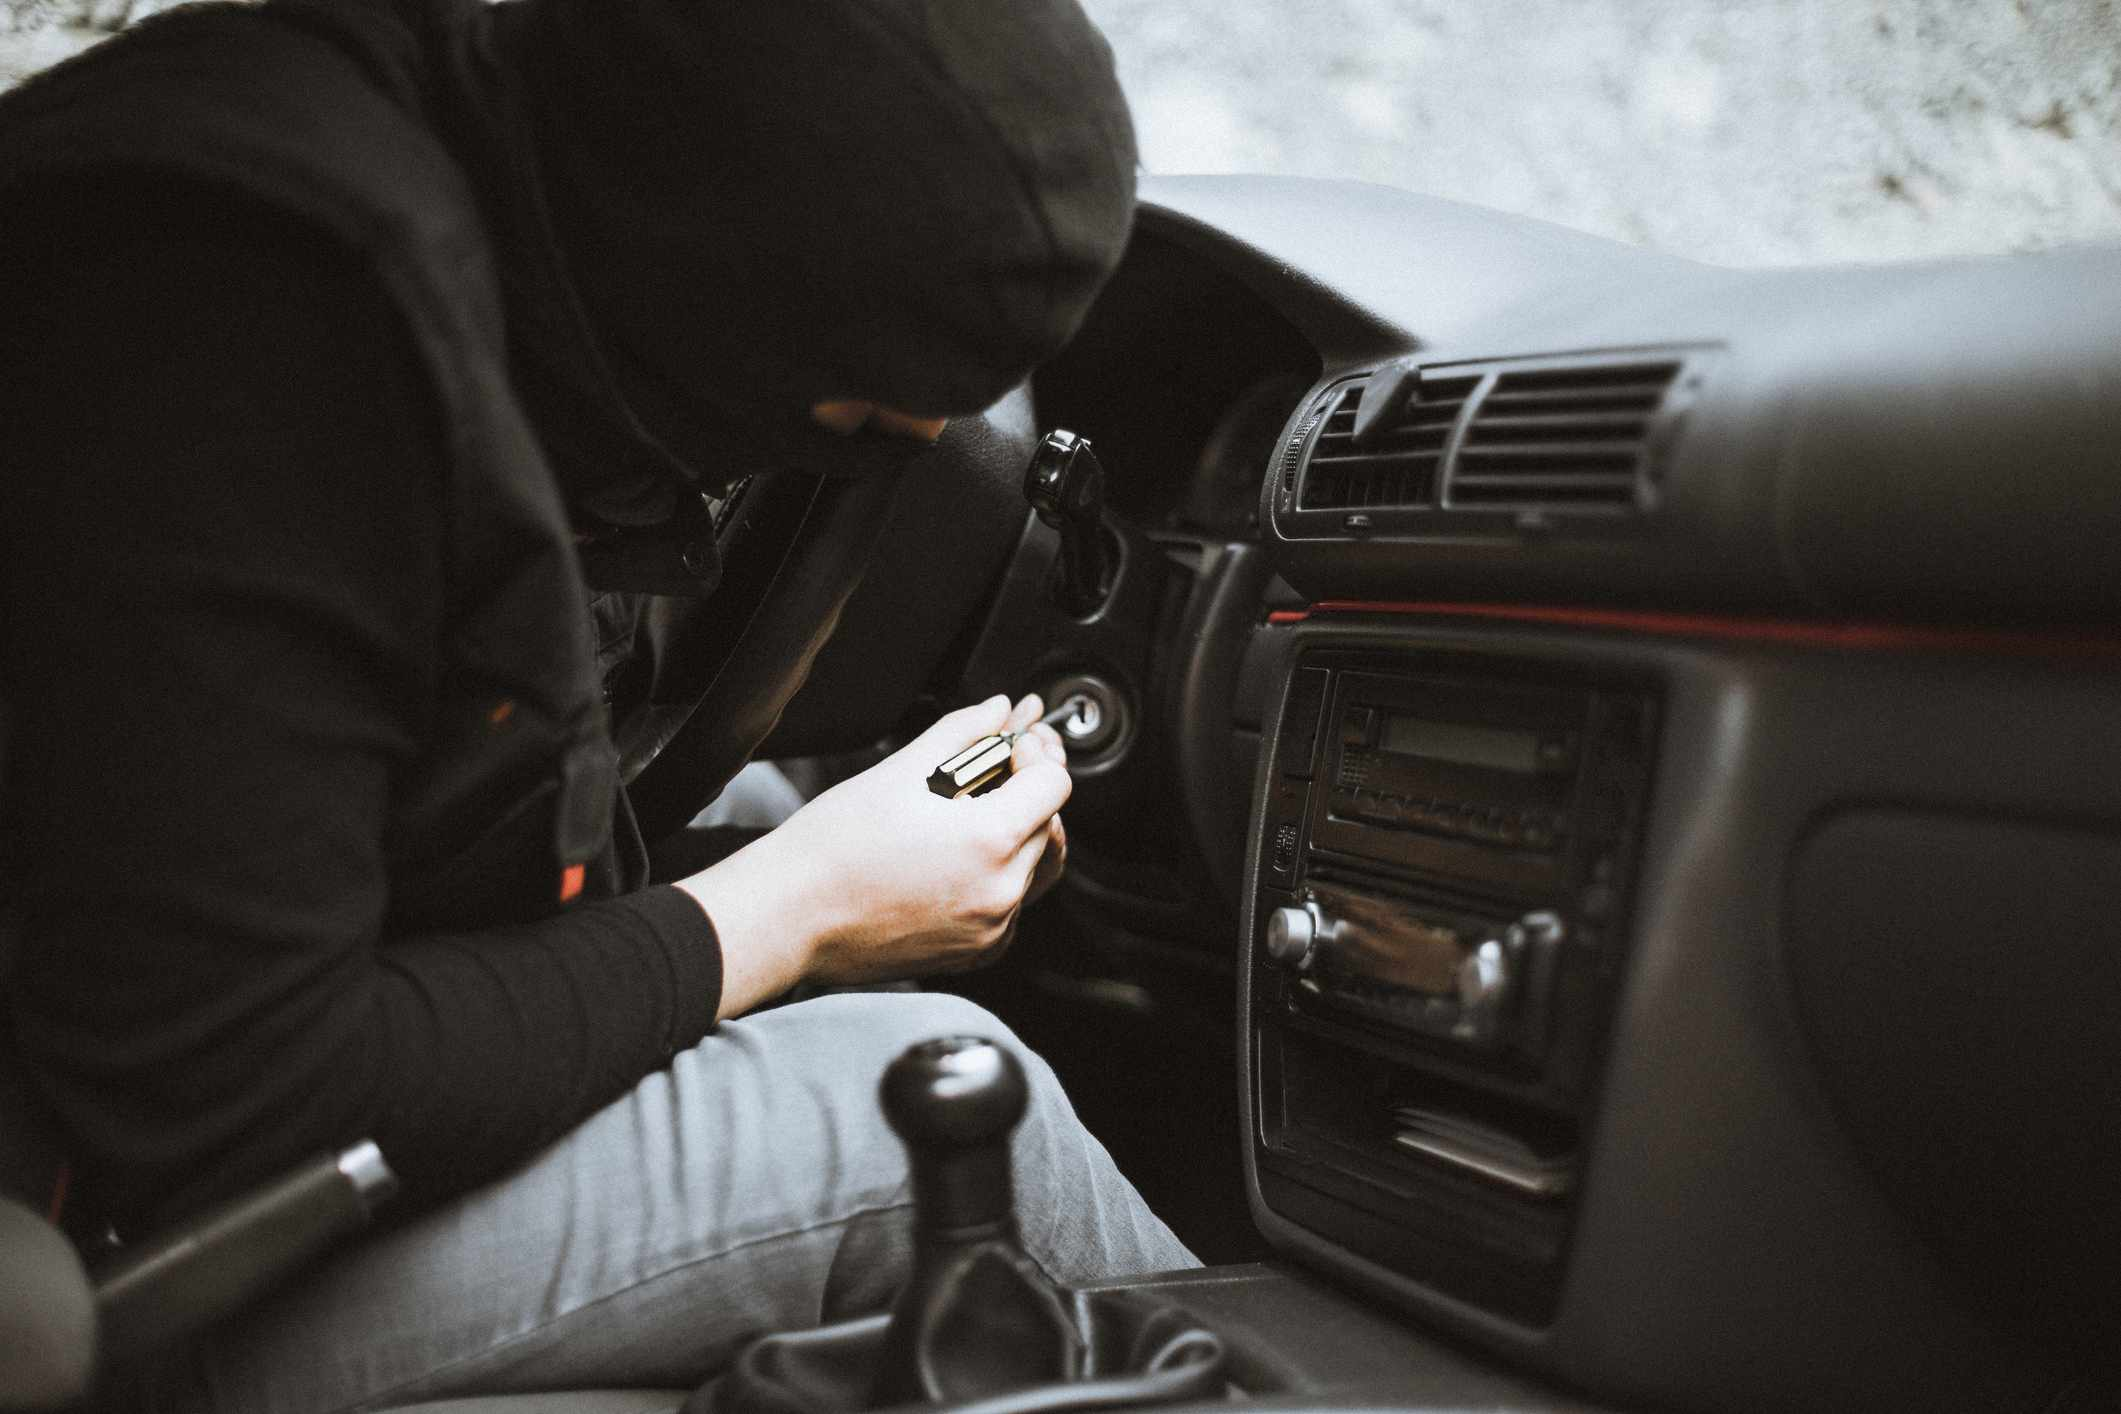 Thief trying to start up the car with a screwdriver